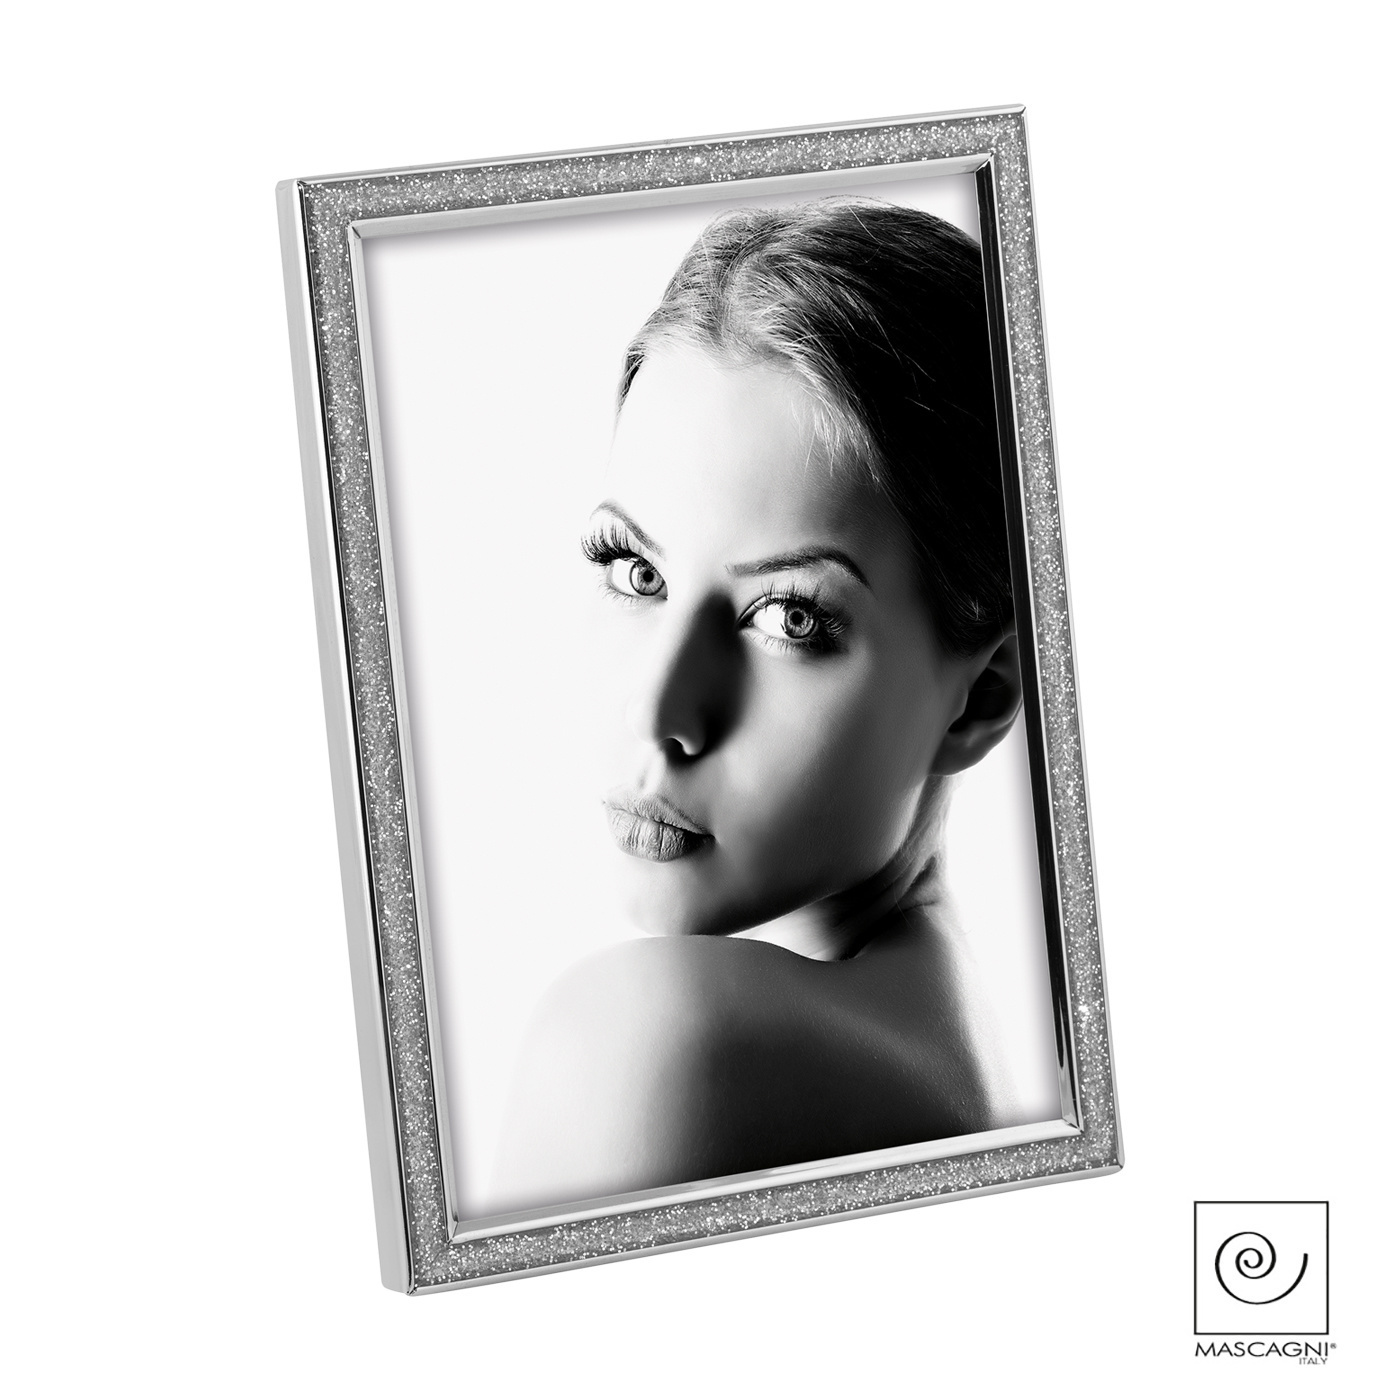 Art Mascagni A1066 PHOTO FRAME 20X25 - COL.SILVER